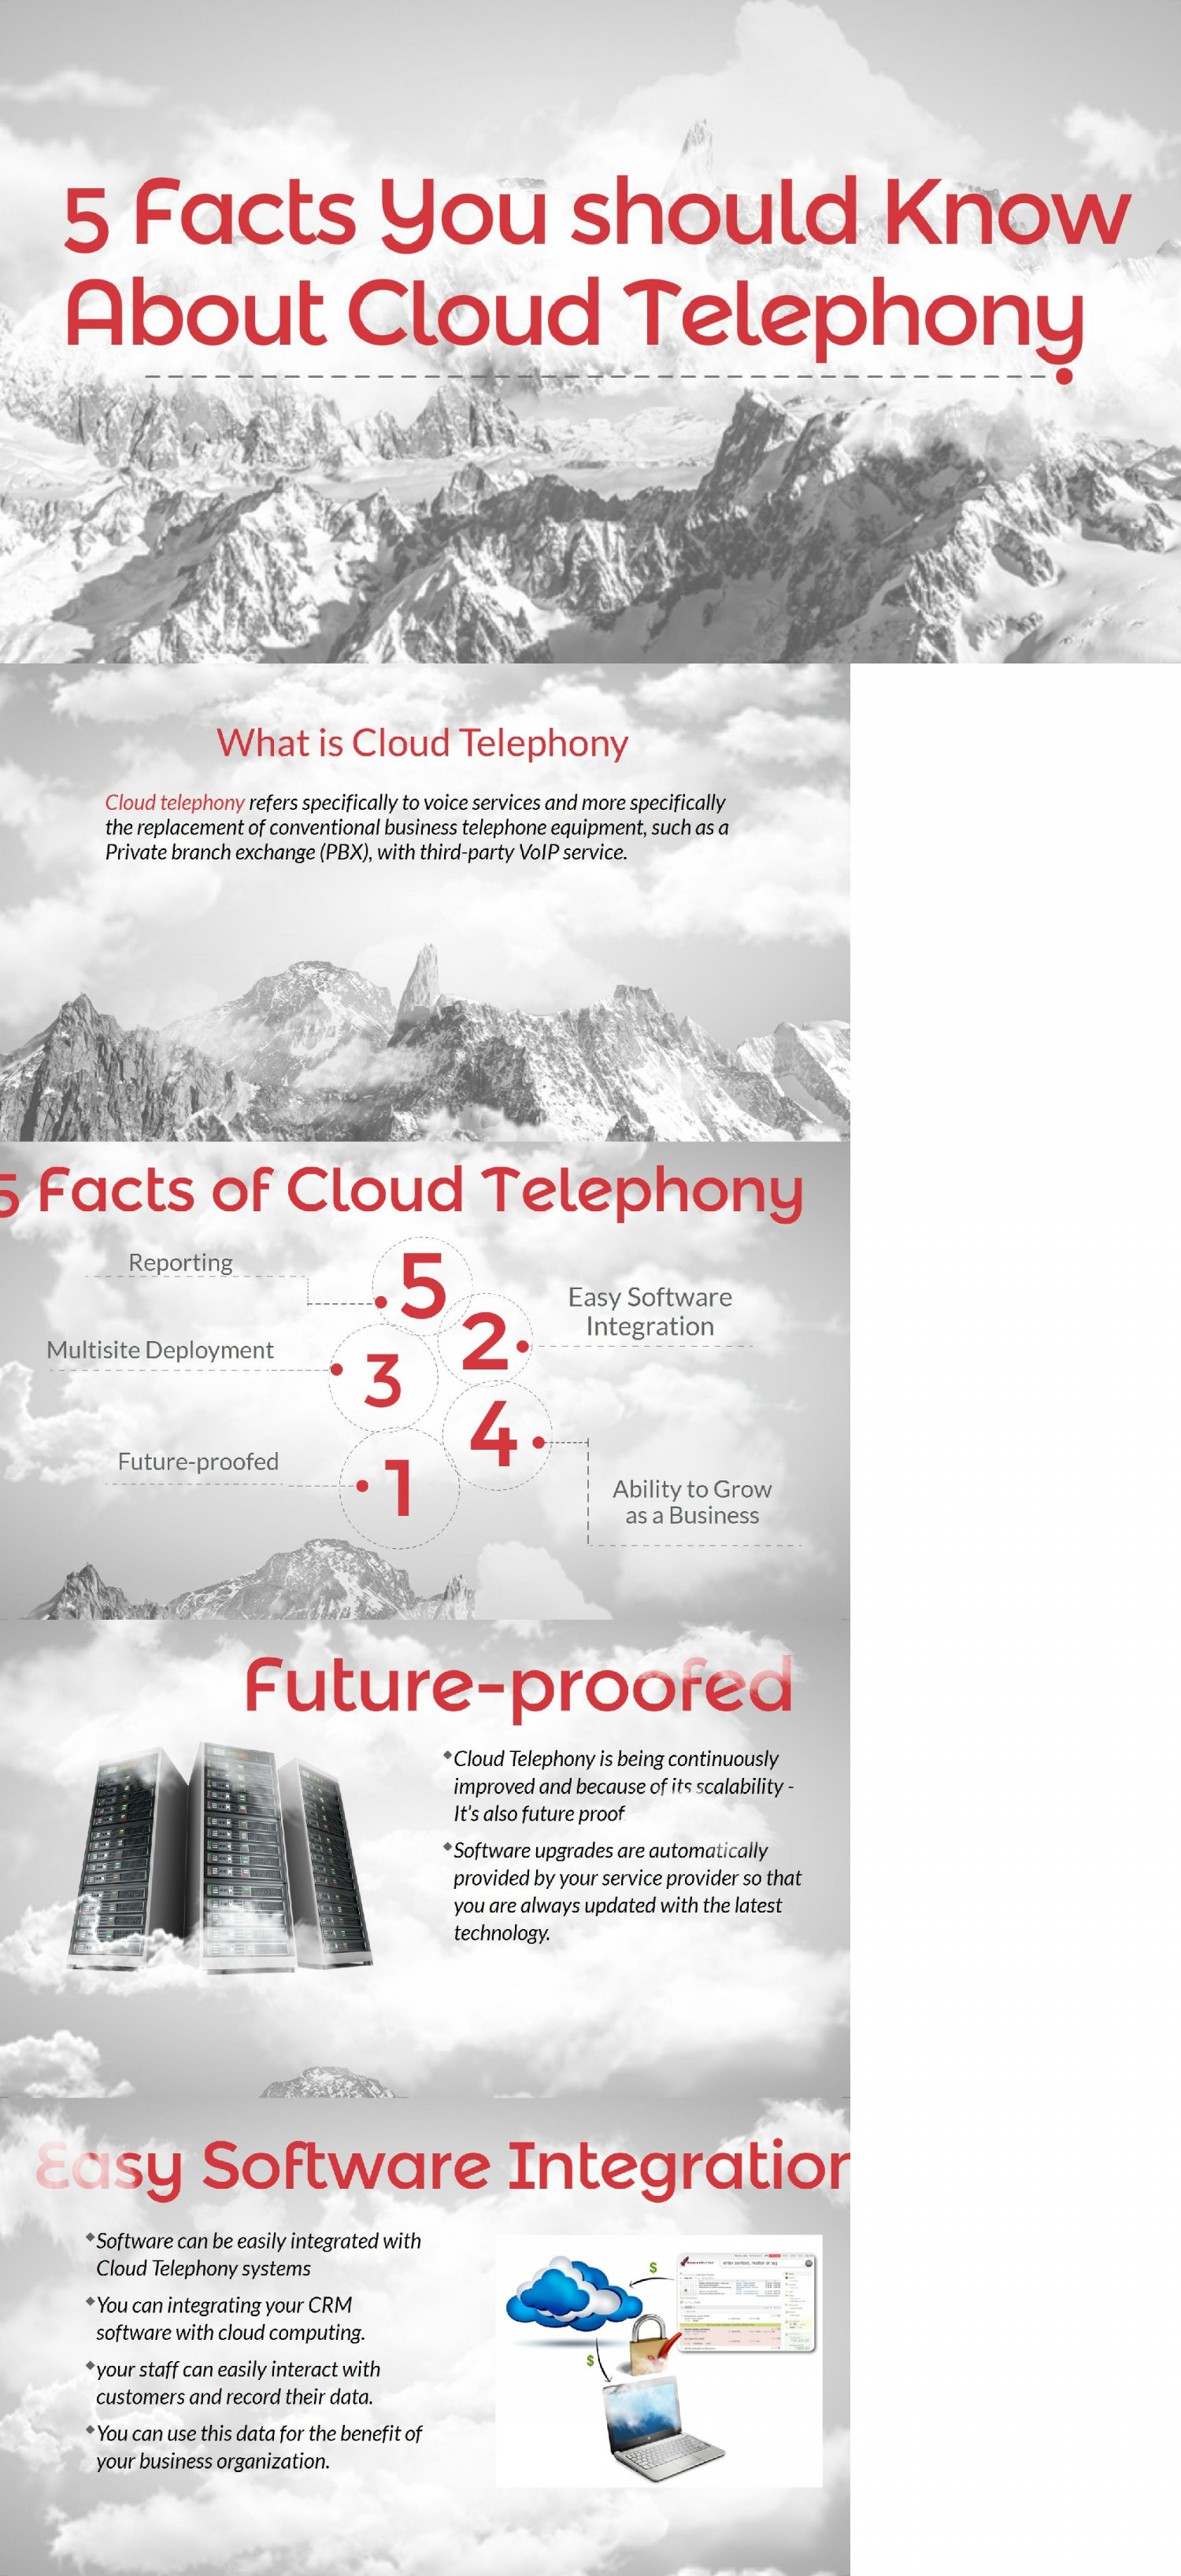 5 Facts You Should Know About Cloud Telephony Infographic